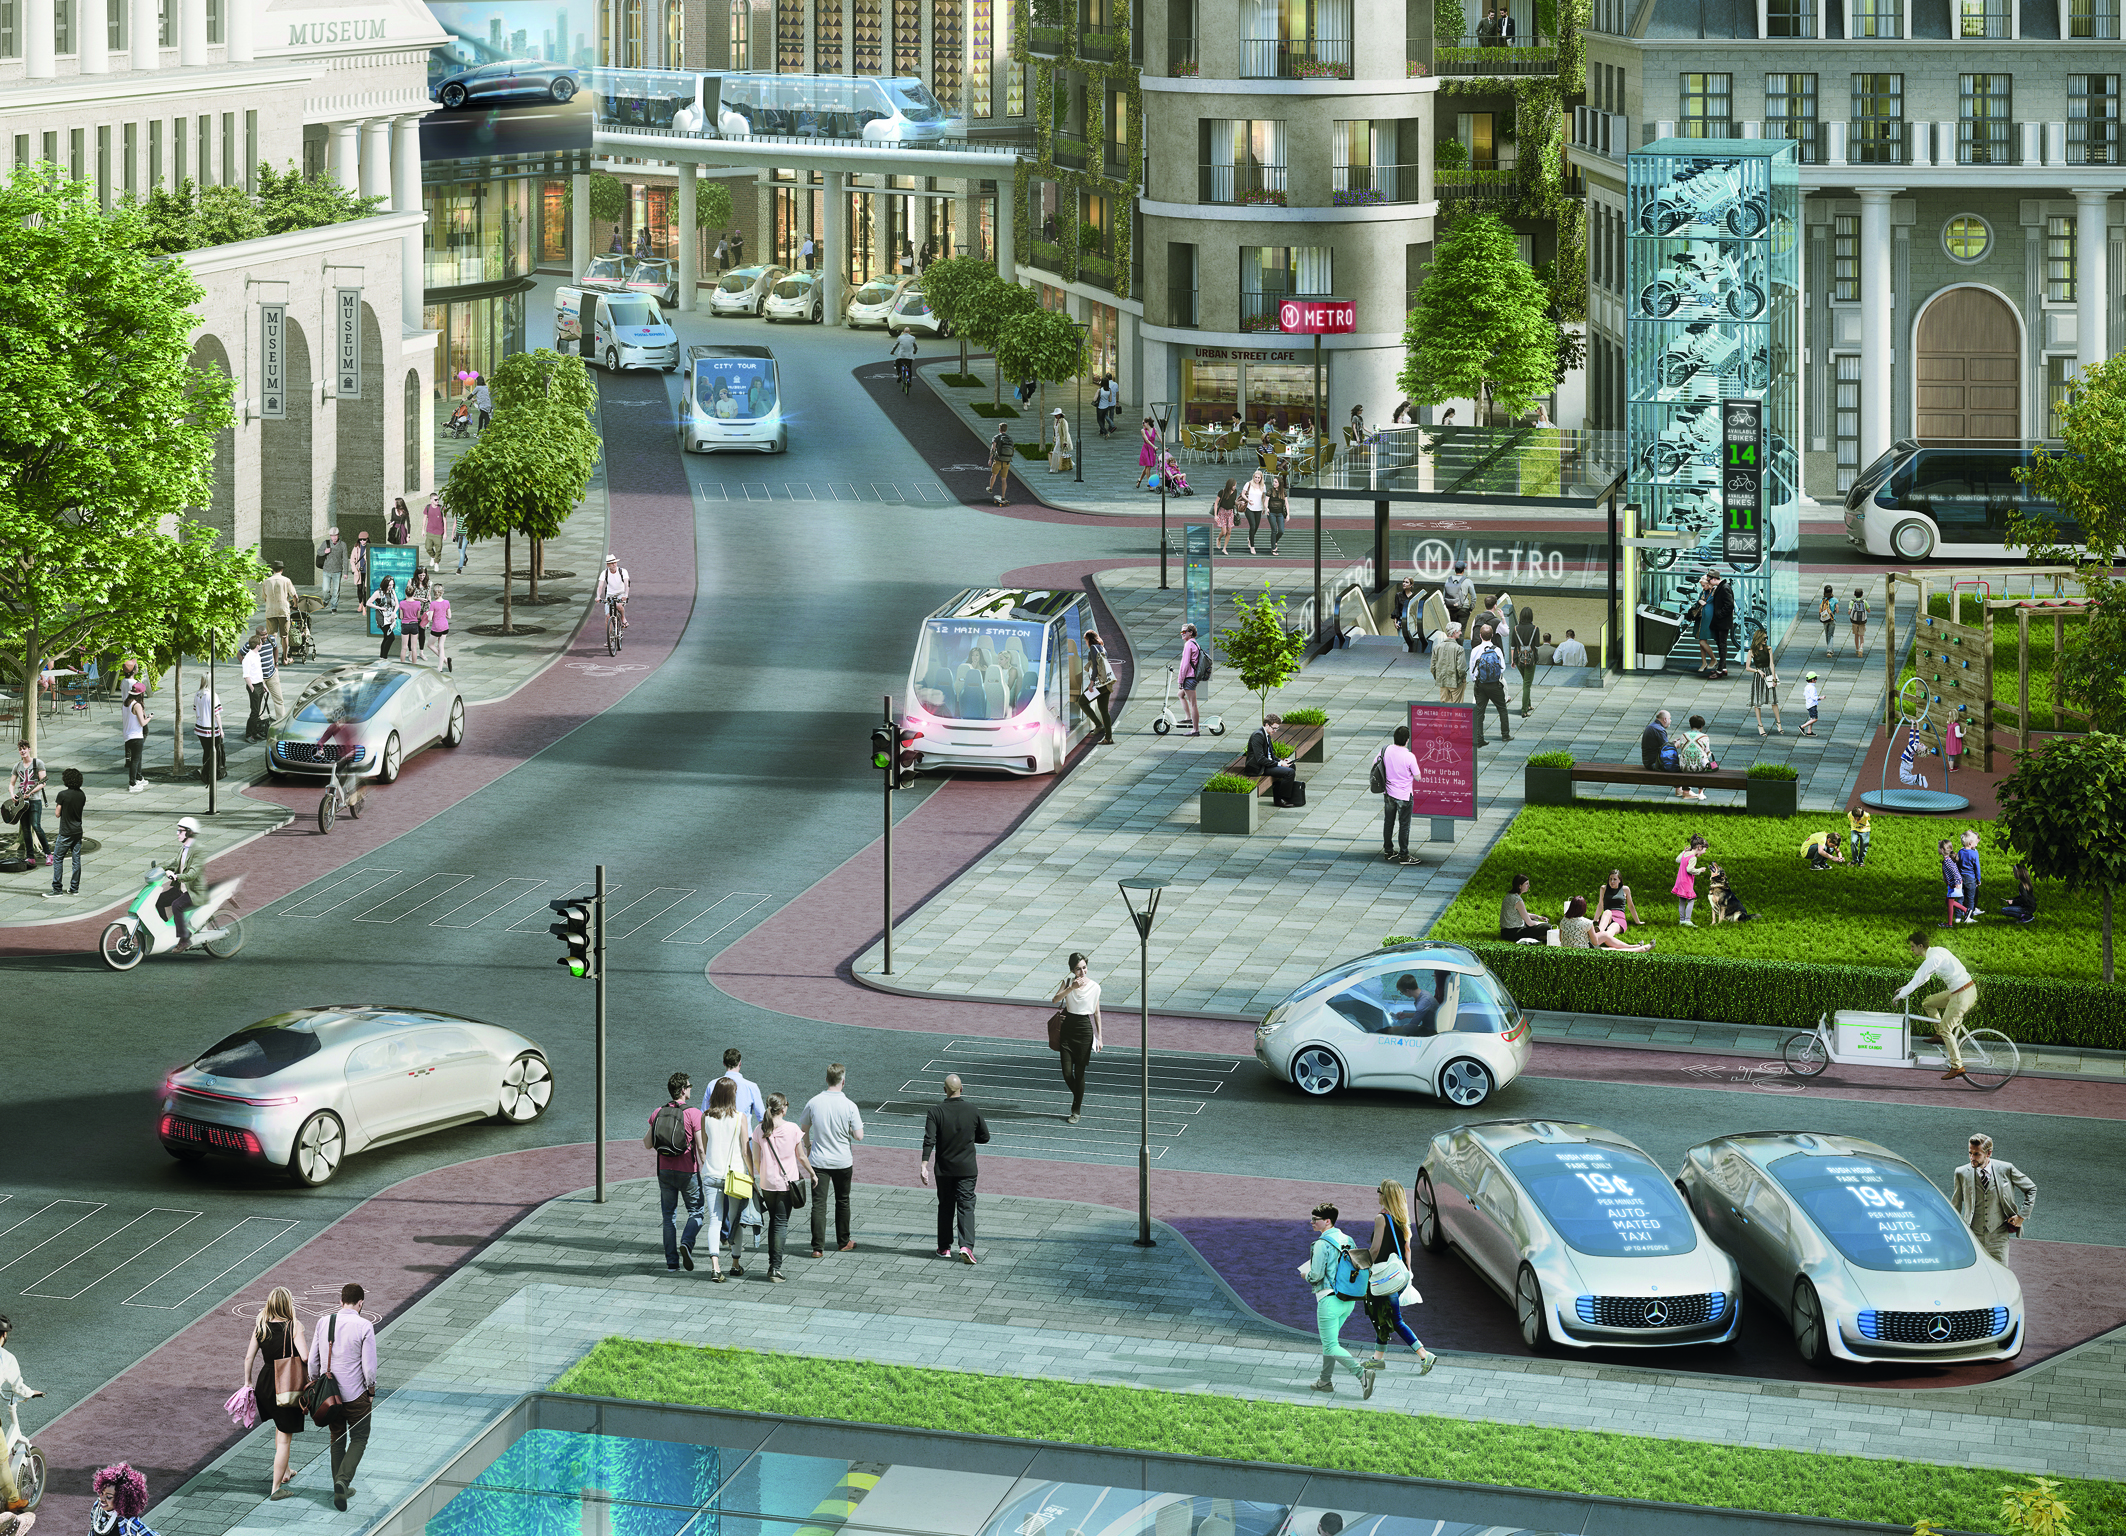 Bosch and Daimler are working together to develop a driverless taxis for cities.